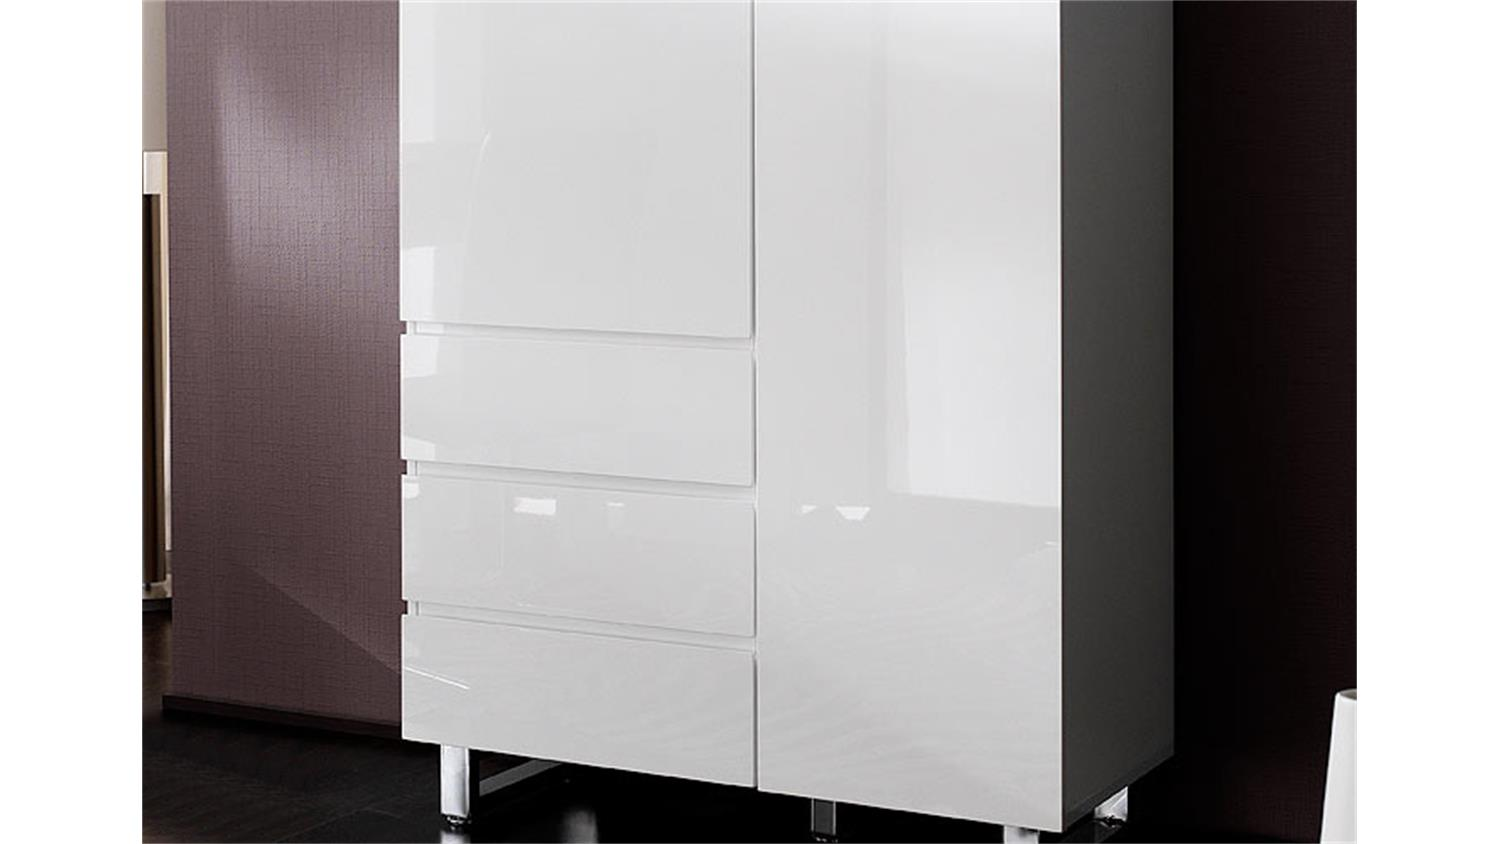 Kommode sydney i highboard schrank in wei hochglanzlack for Kommode sydney 04